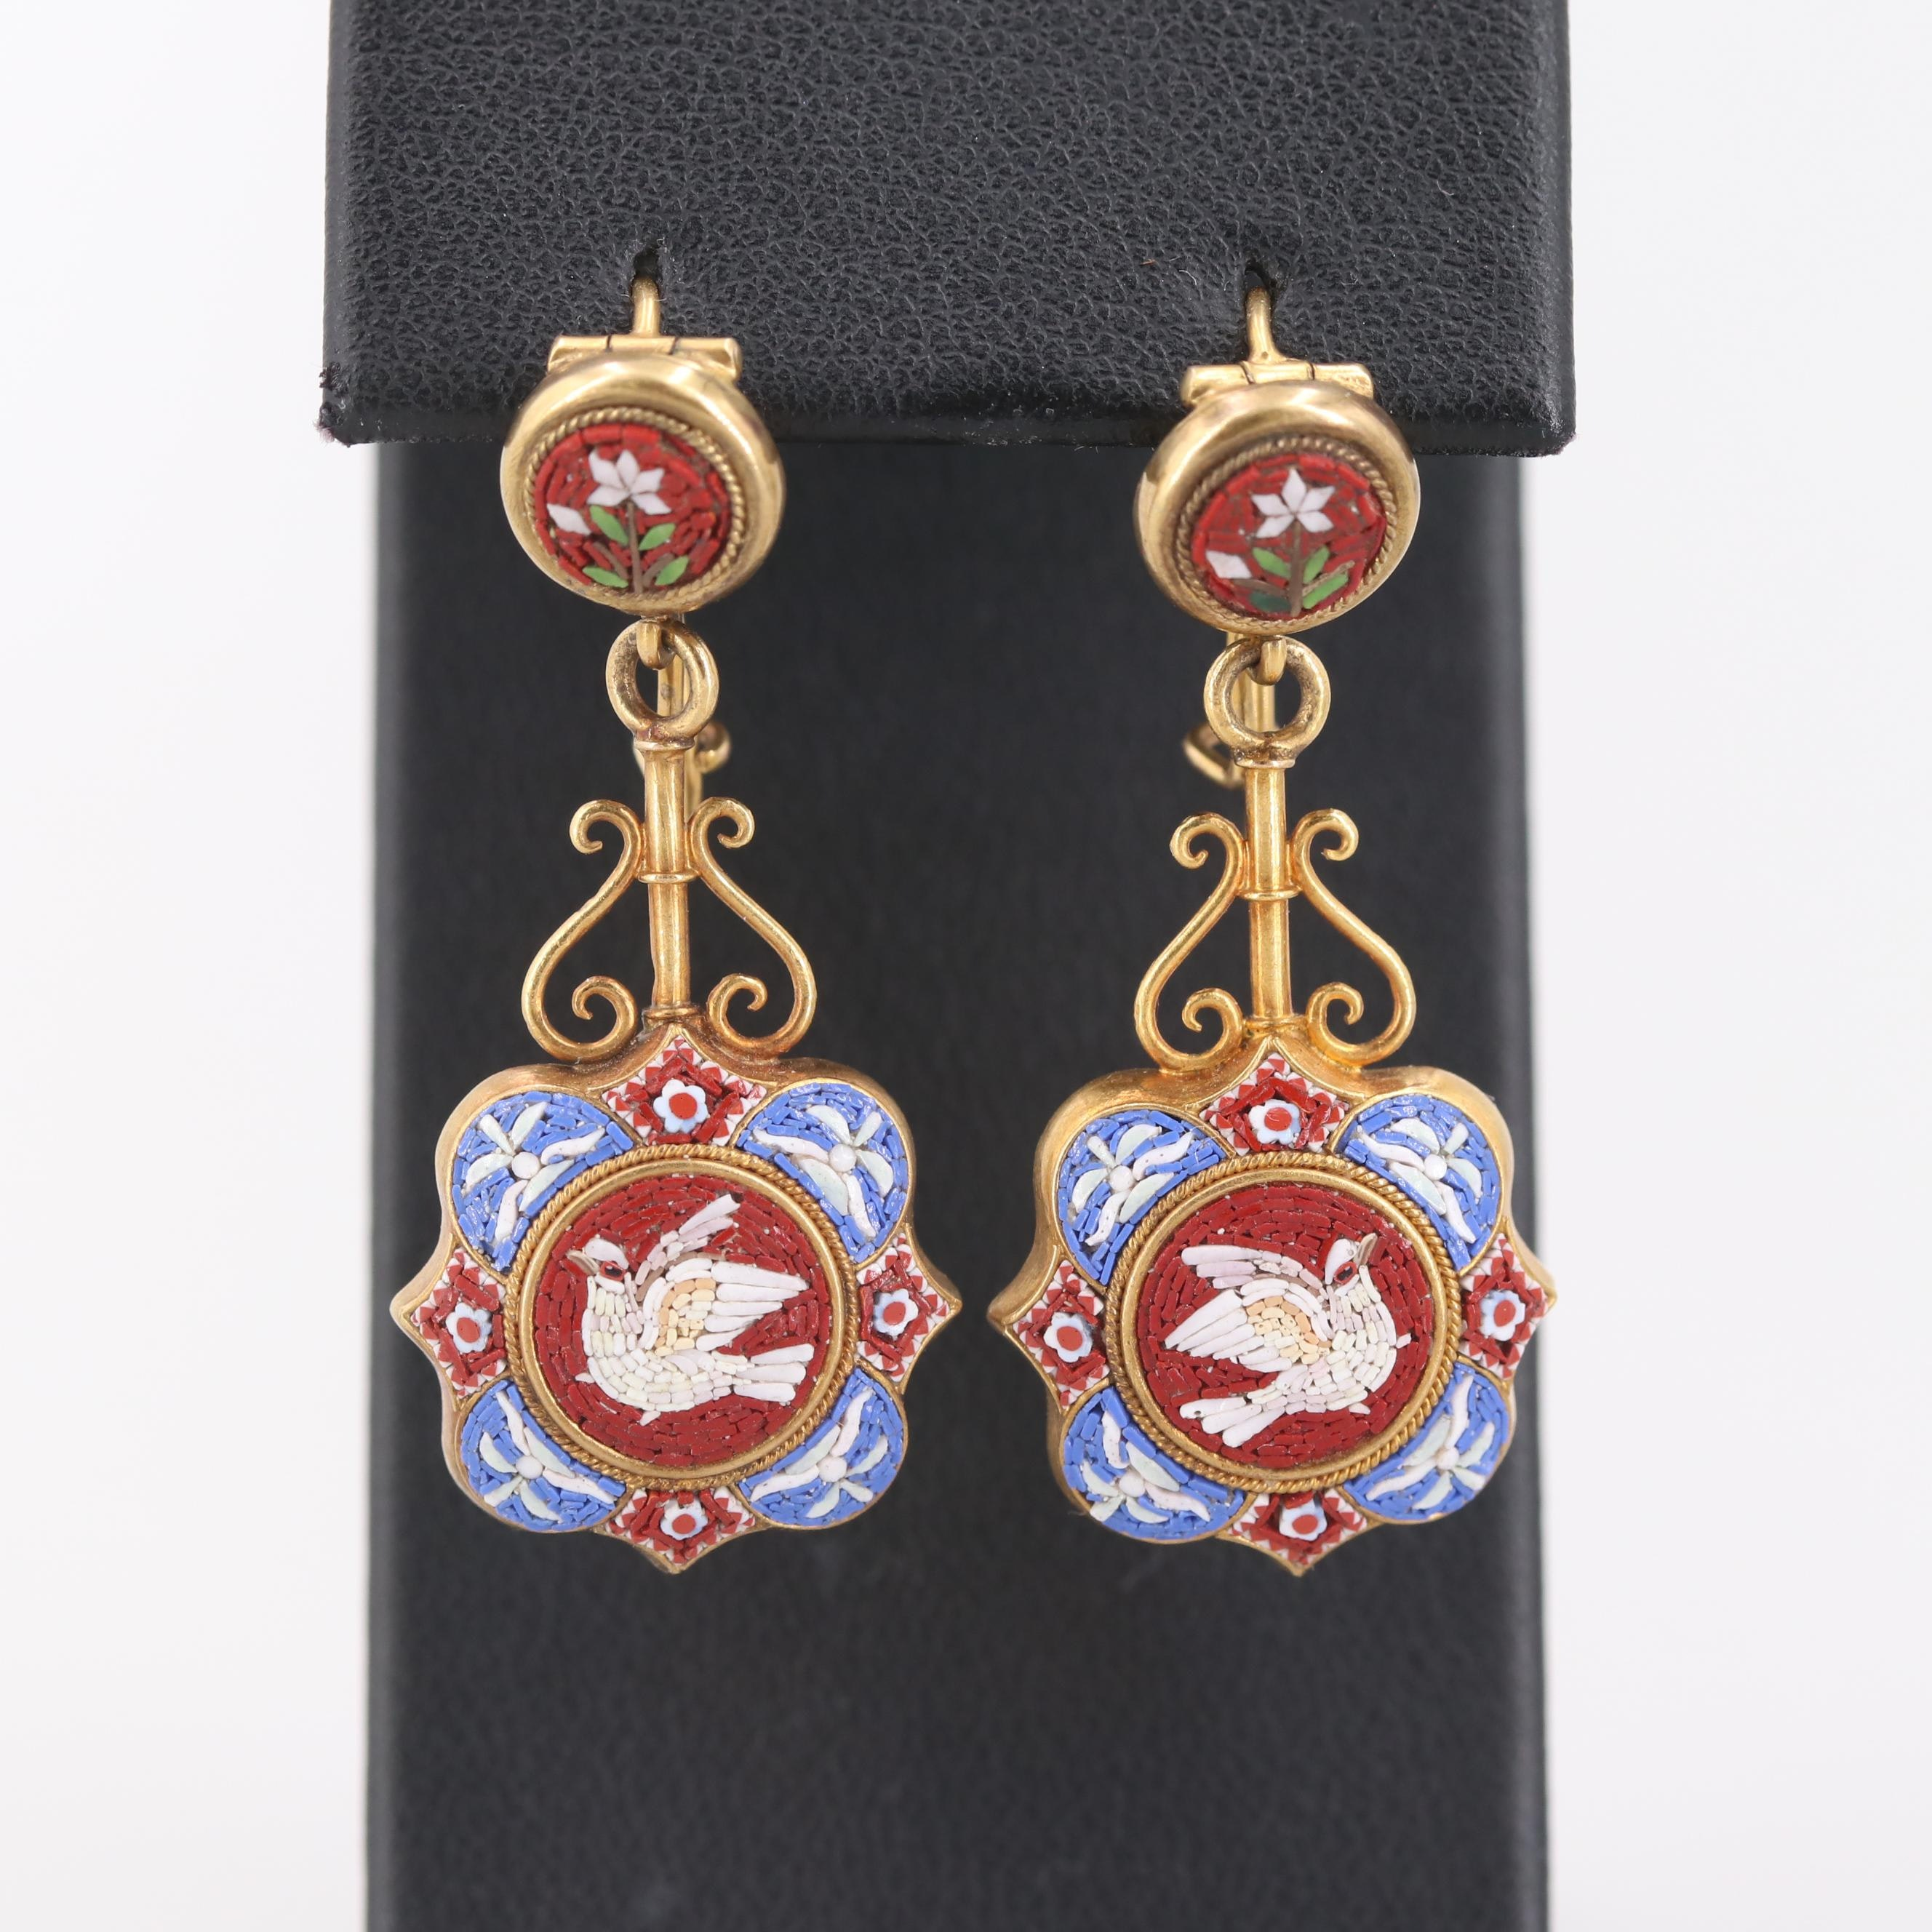 Circa 1870s 14K and 18K Yellow Gold Glass Micromosaic Drop Earrings